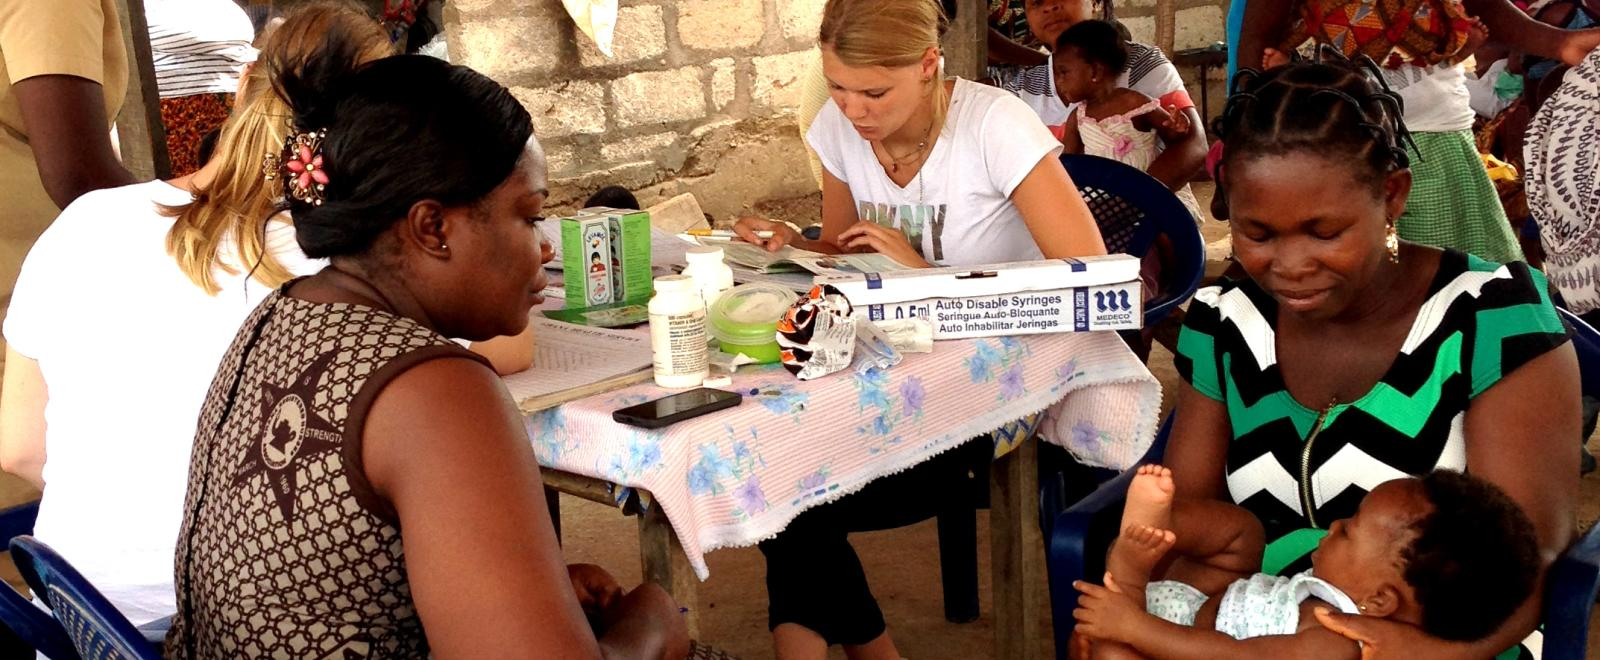 Projects Abroad Midwifery interns participate in a community healthcare outreach in a rural part of Ghana.